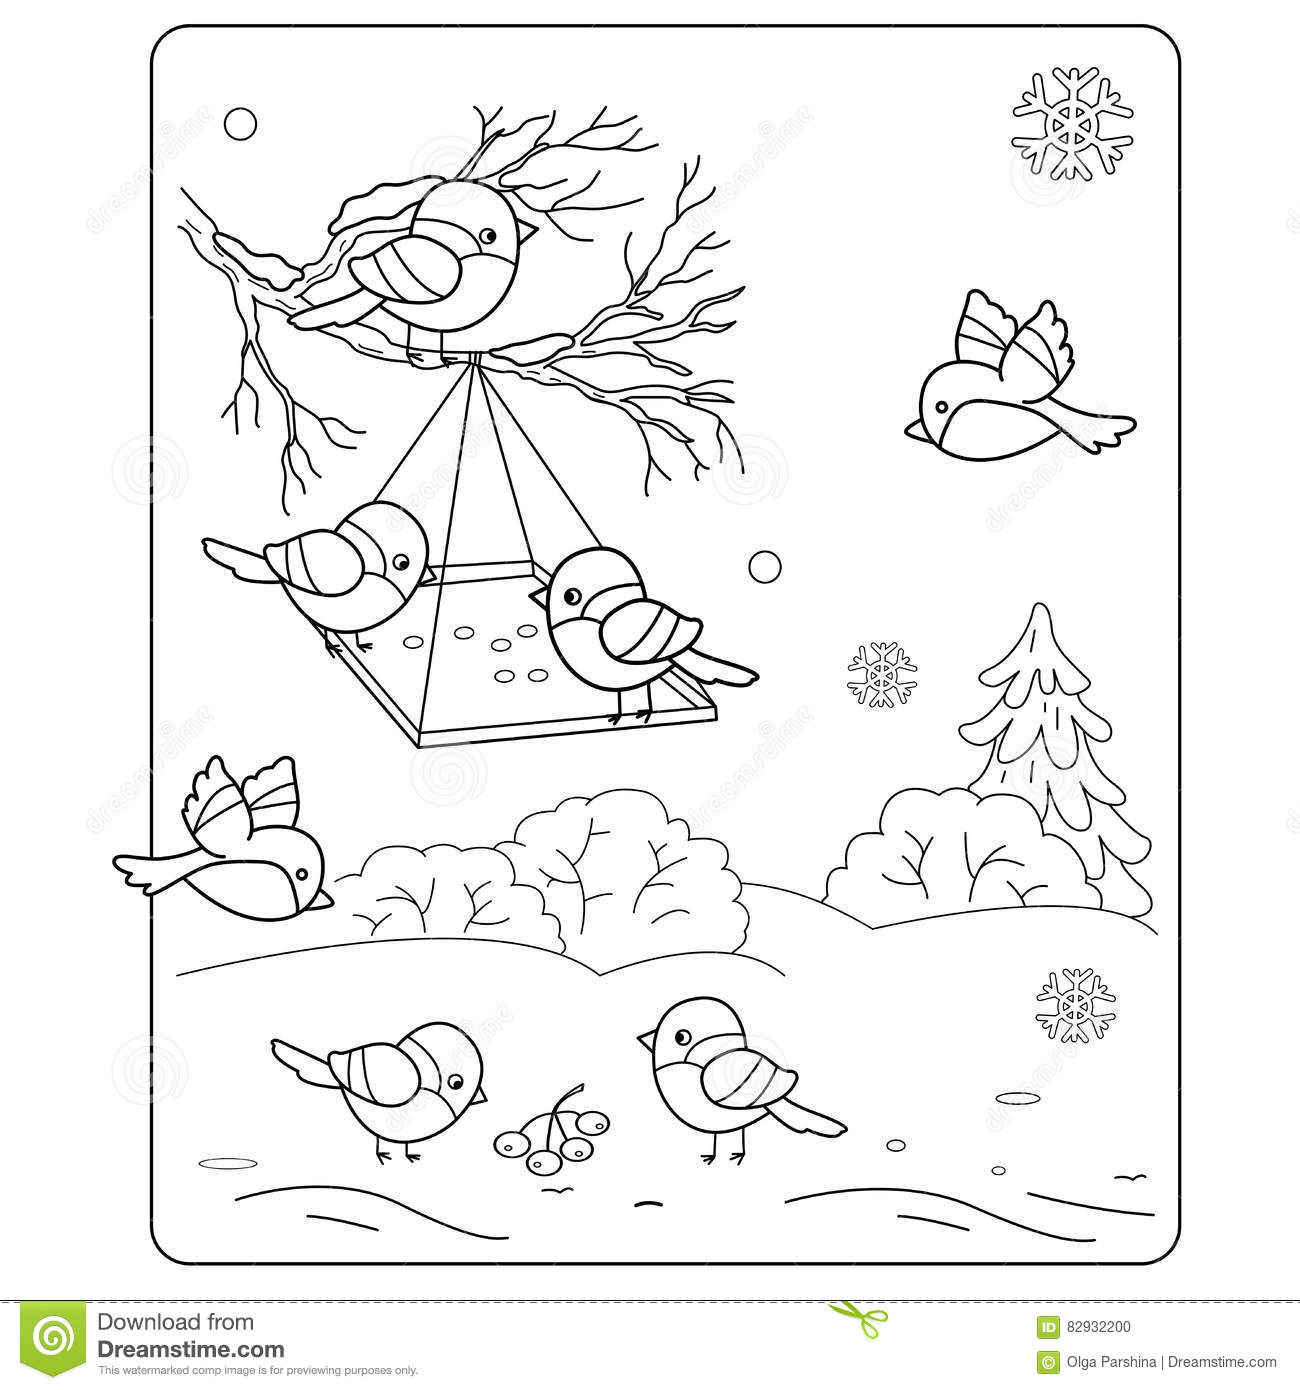 Download Coloring Page Outline Of Cartoon Birds In The Winter Stock Vector